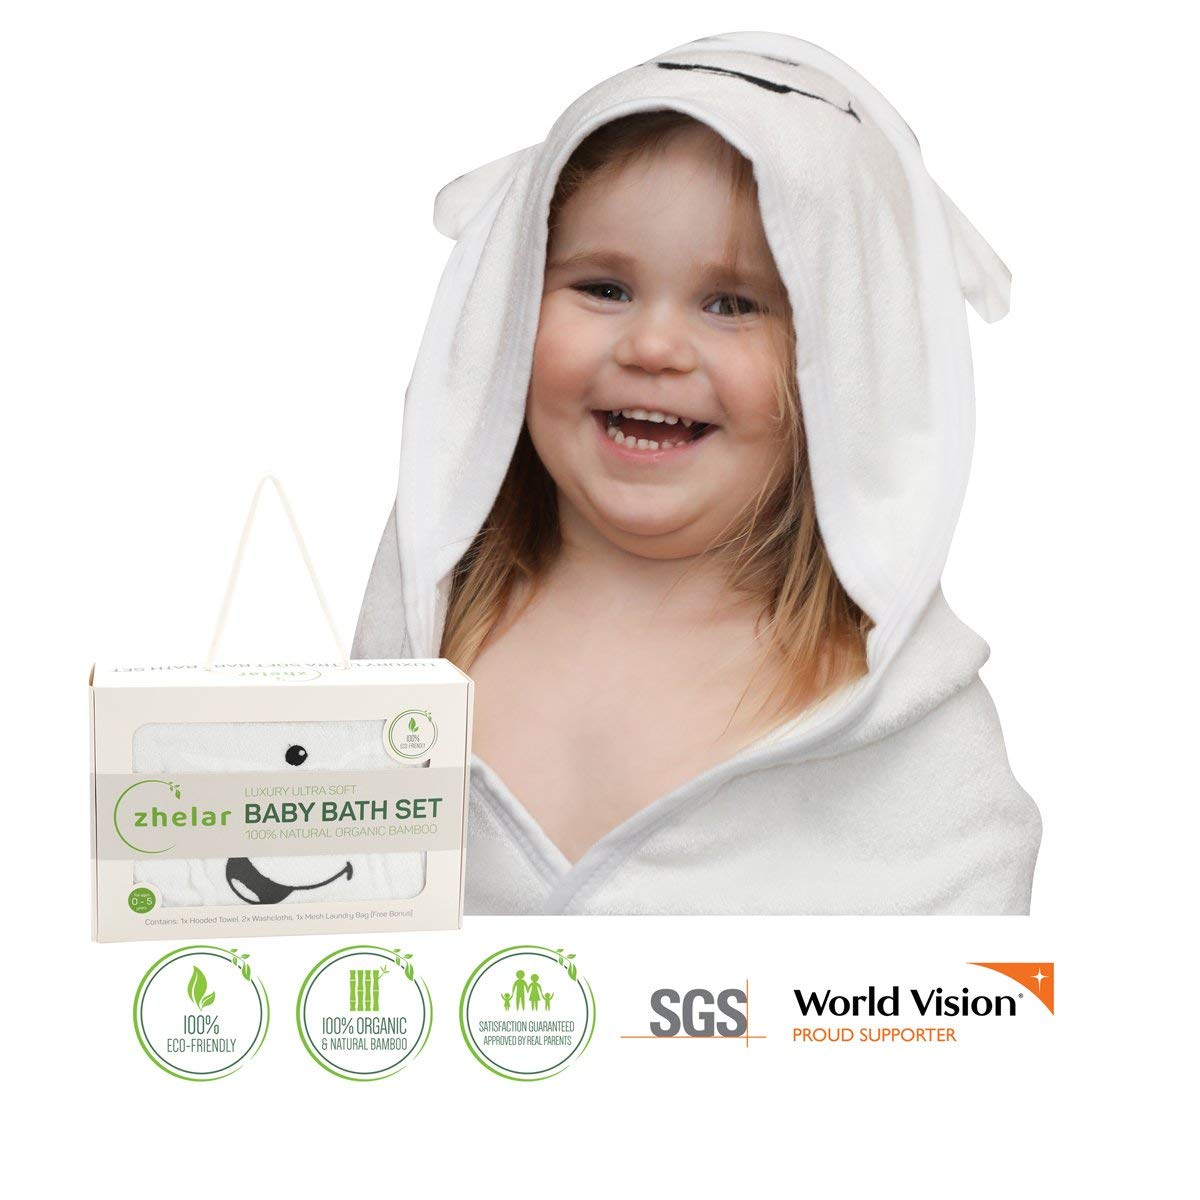 Large Ultra Soft Baby Bath Towel with Hood, 2 Washcloths & Laundry Bag | Natural Organic Bamboo | Keep Newborns, Infants, Toddlers Warm & Cosy | Perfect Registry & Shower Gift | White + White